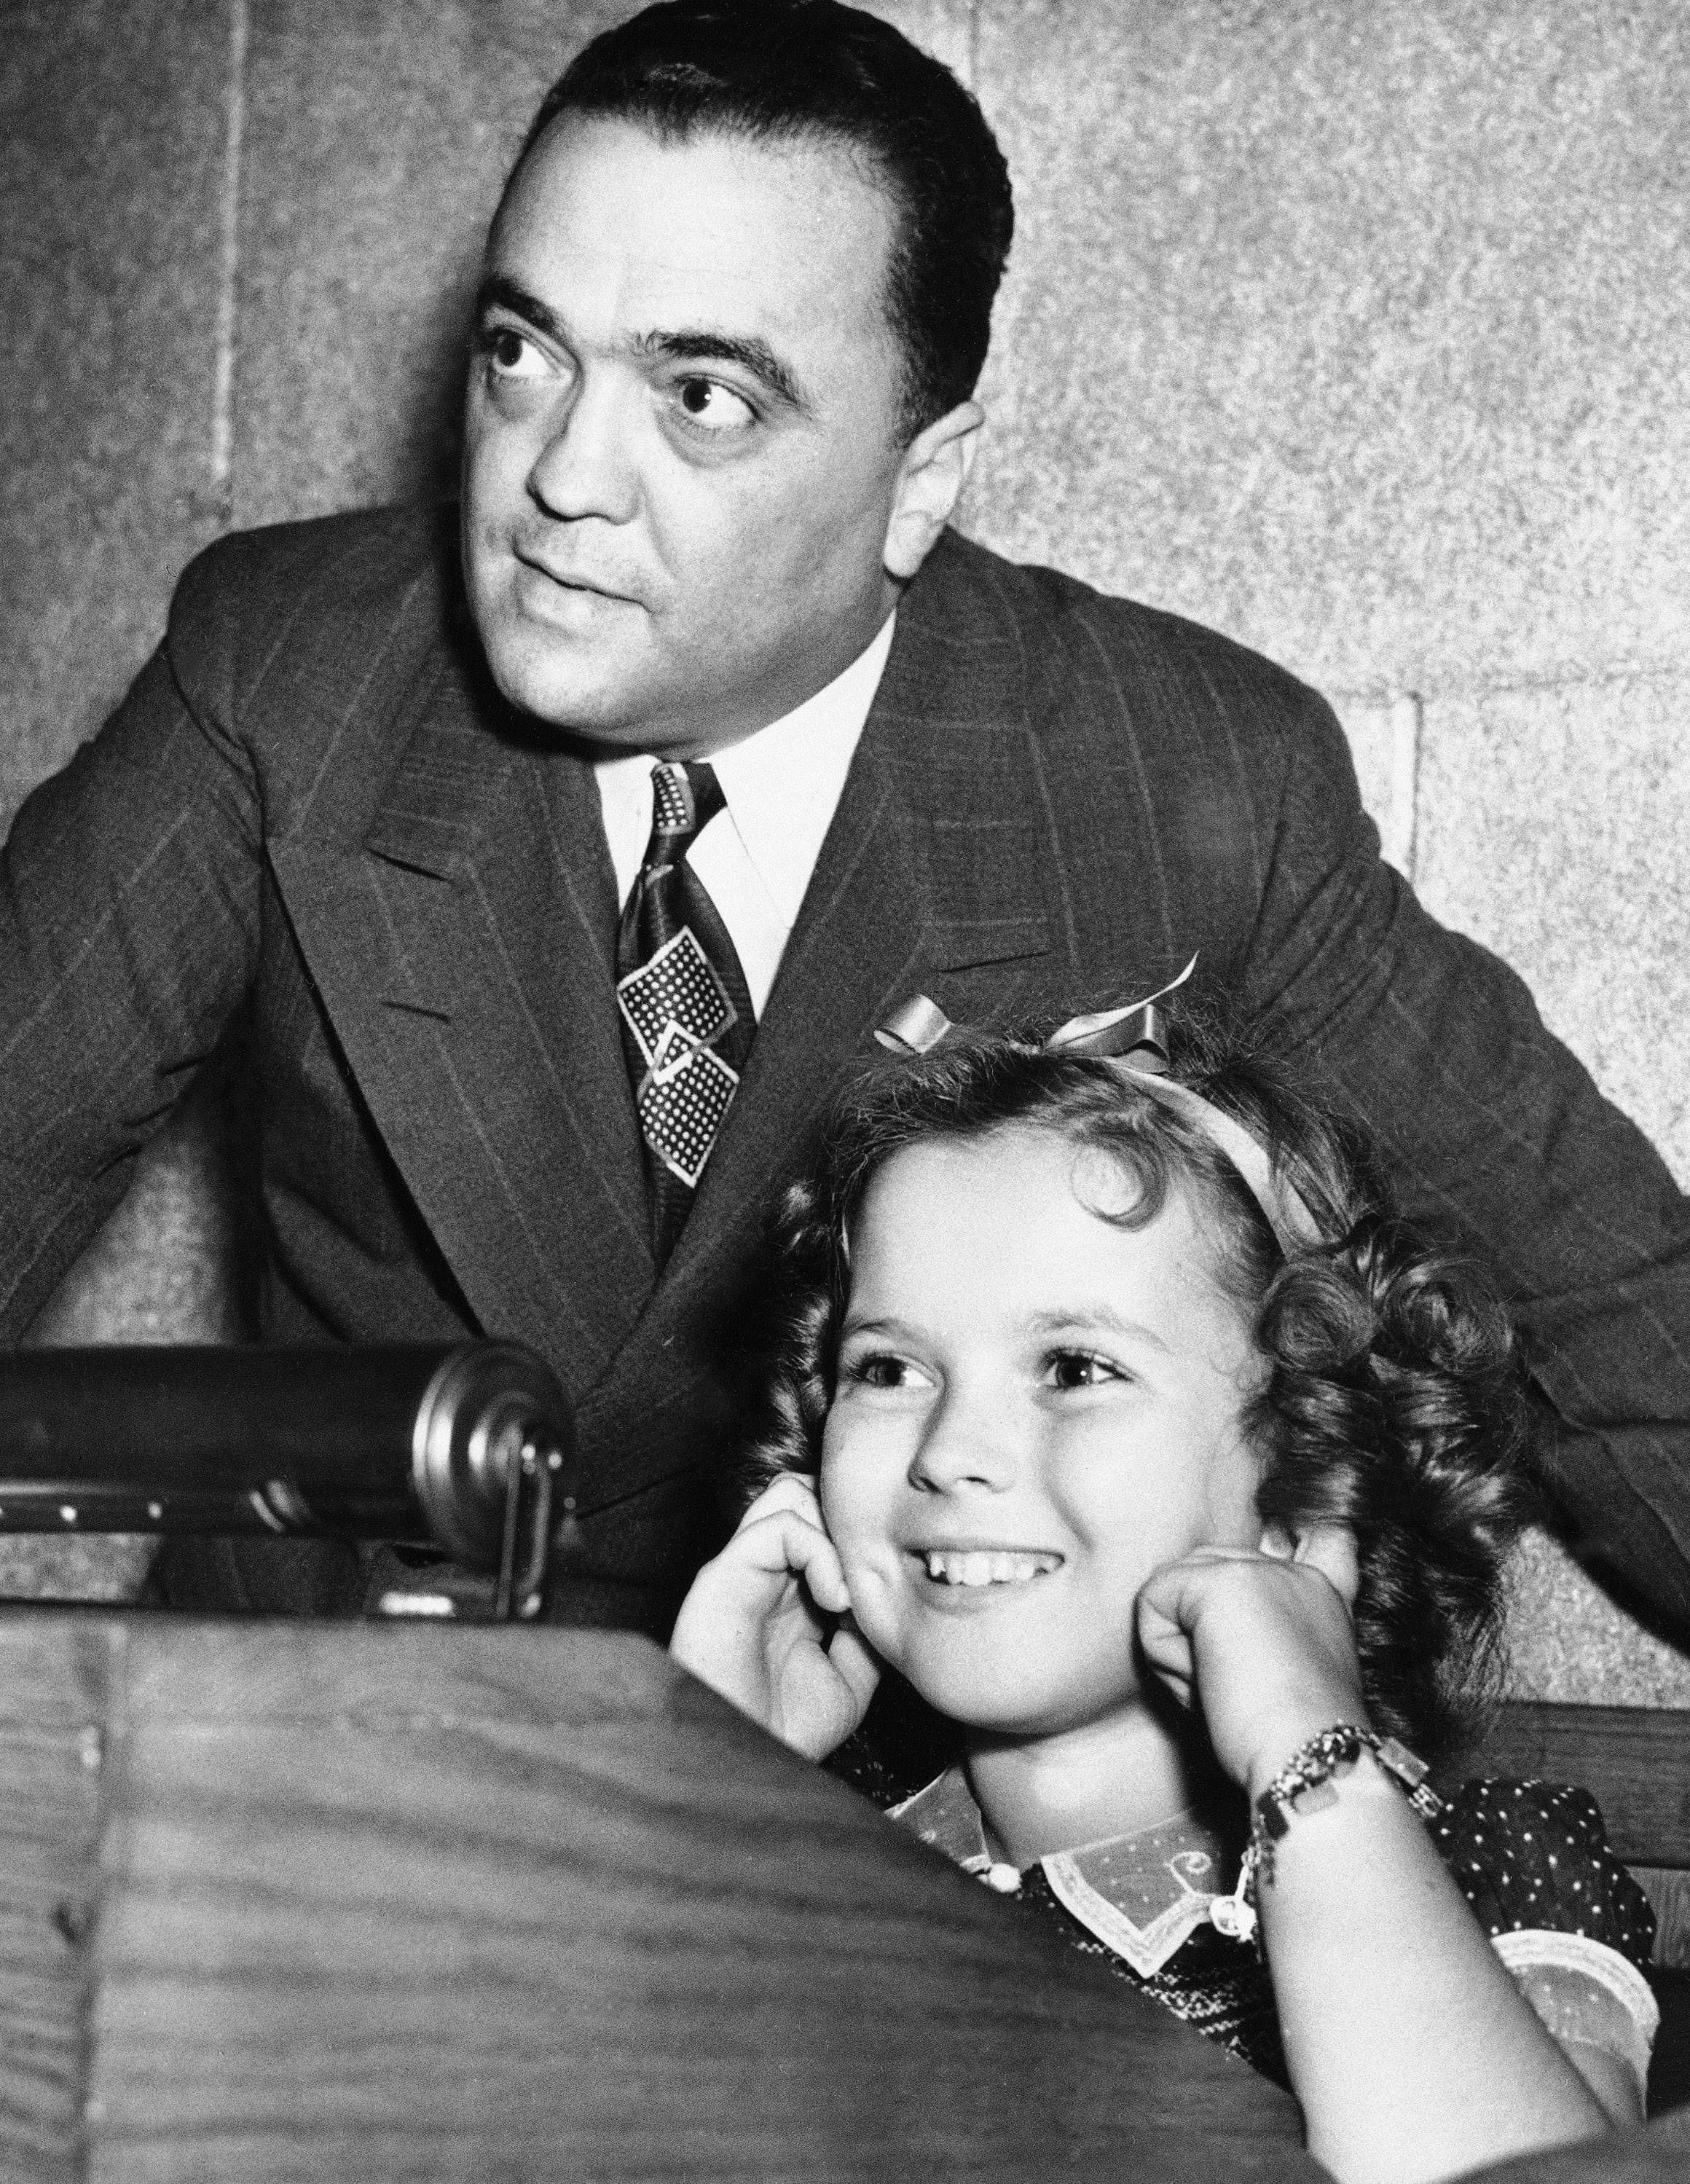 In this June 24, 1938, file photo, young actress Shirley Temple plugs her ears as her father shoots a federal agent's gun, while Federal Bureau of Investigation Director J. Edgar Hoover gives her a tour of FBI headquarters in Washington.